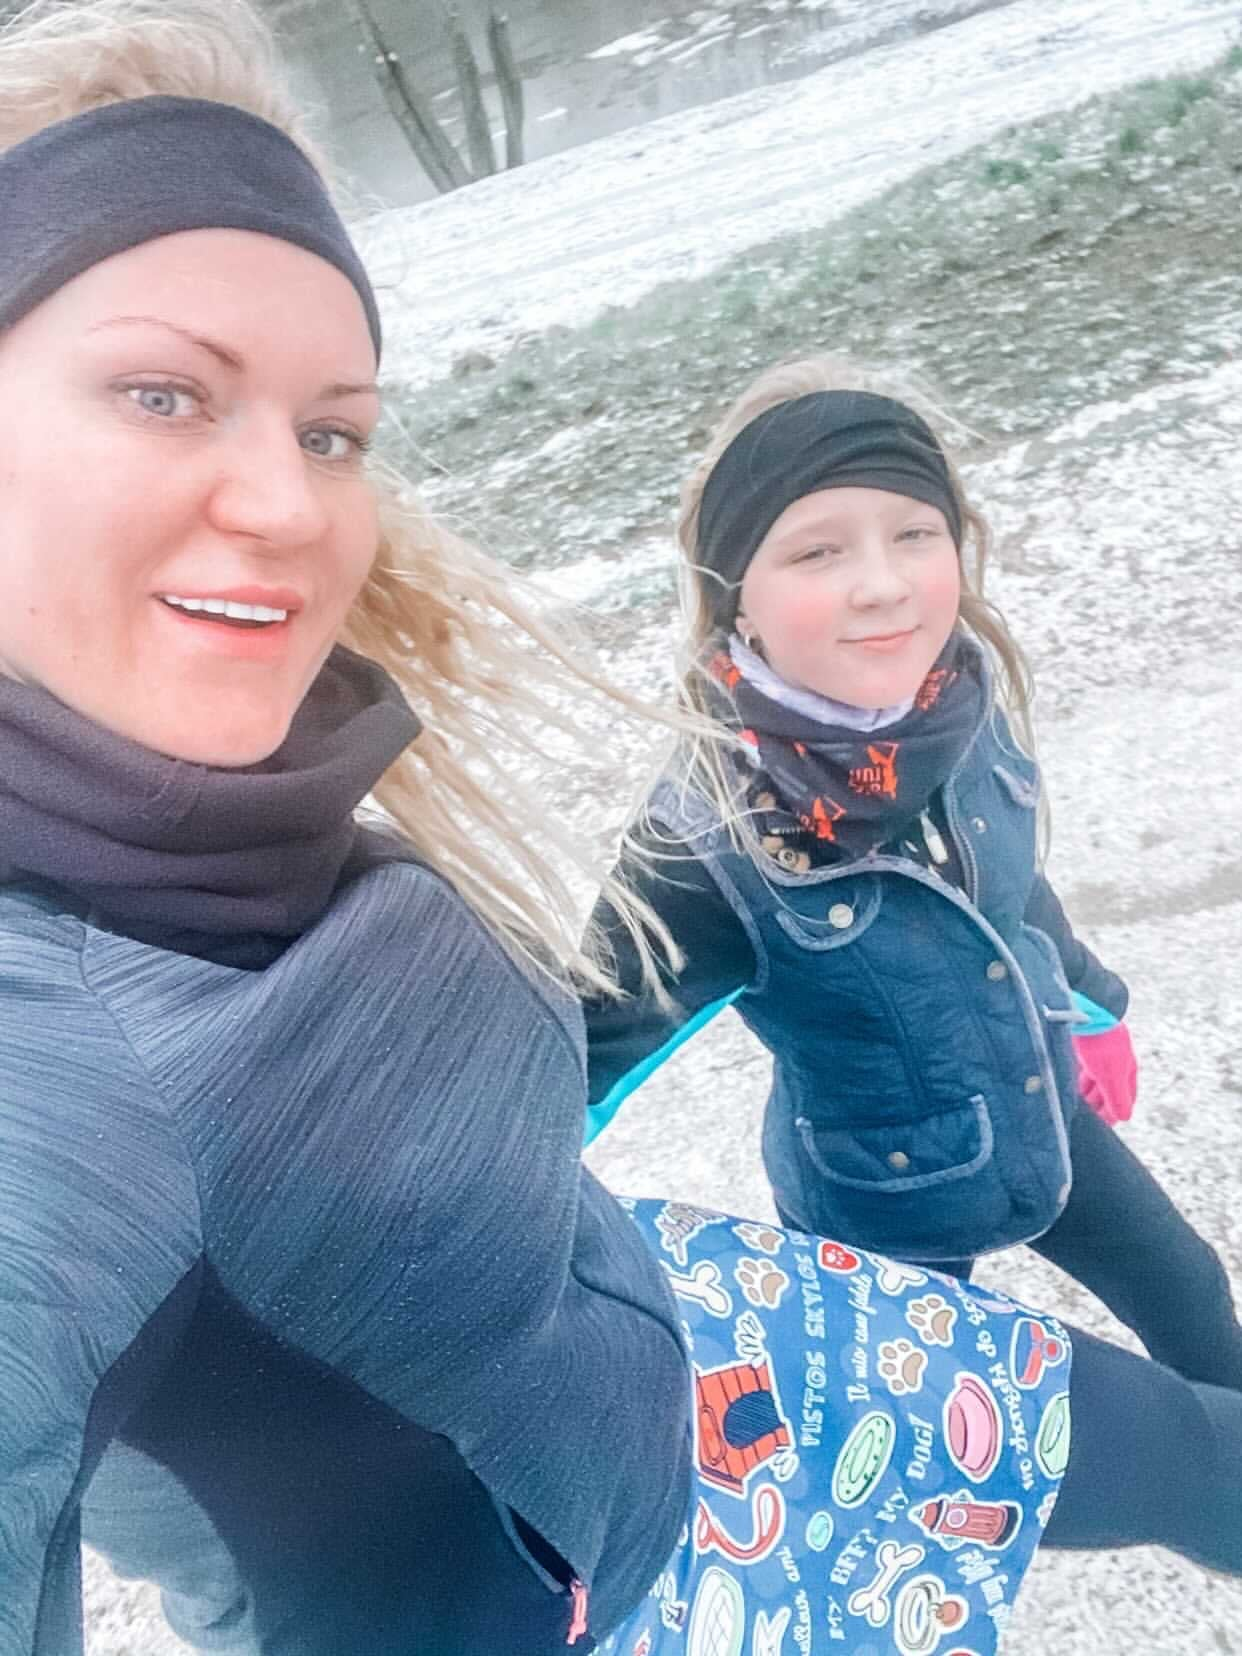 Samantha wearing a Bolder skirt with her child outside in the snow